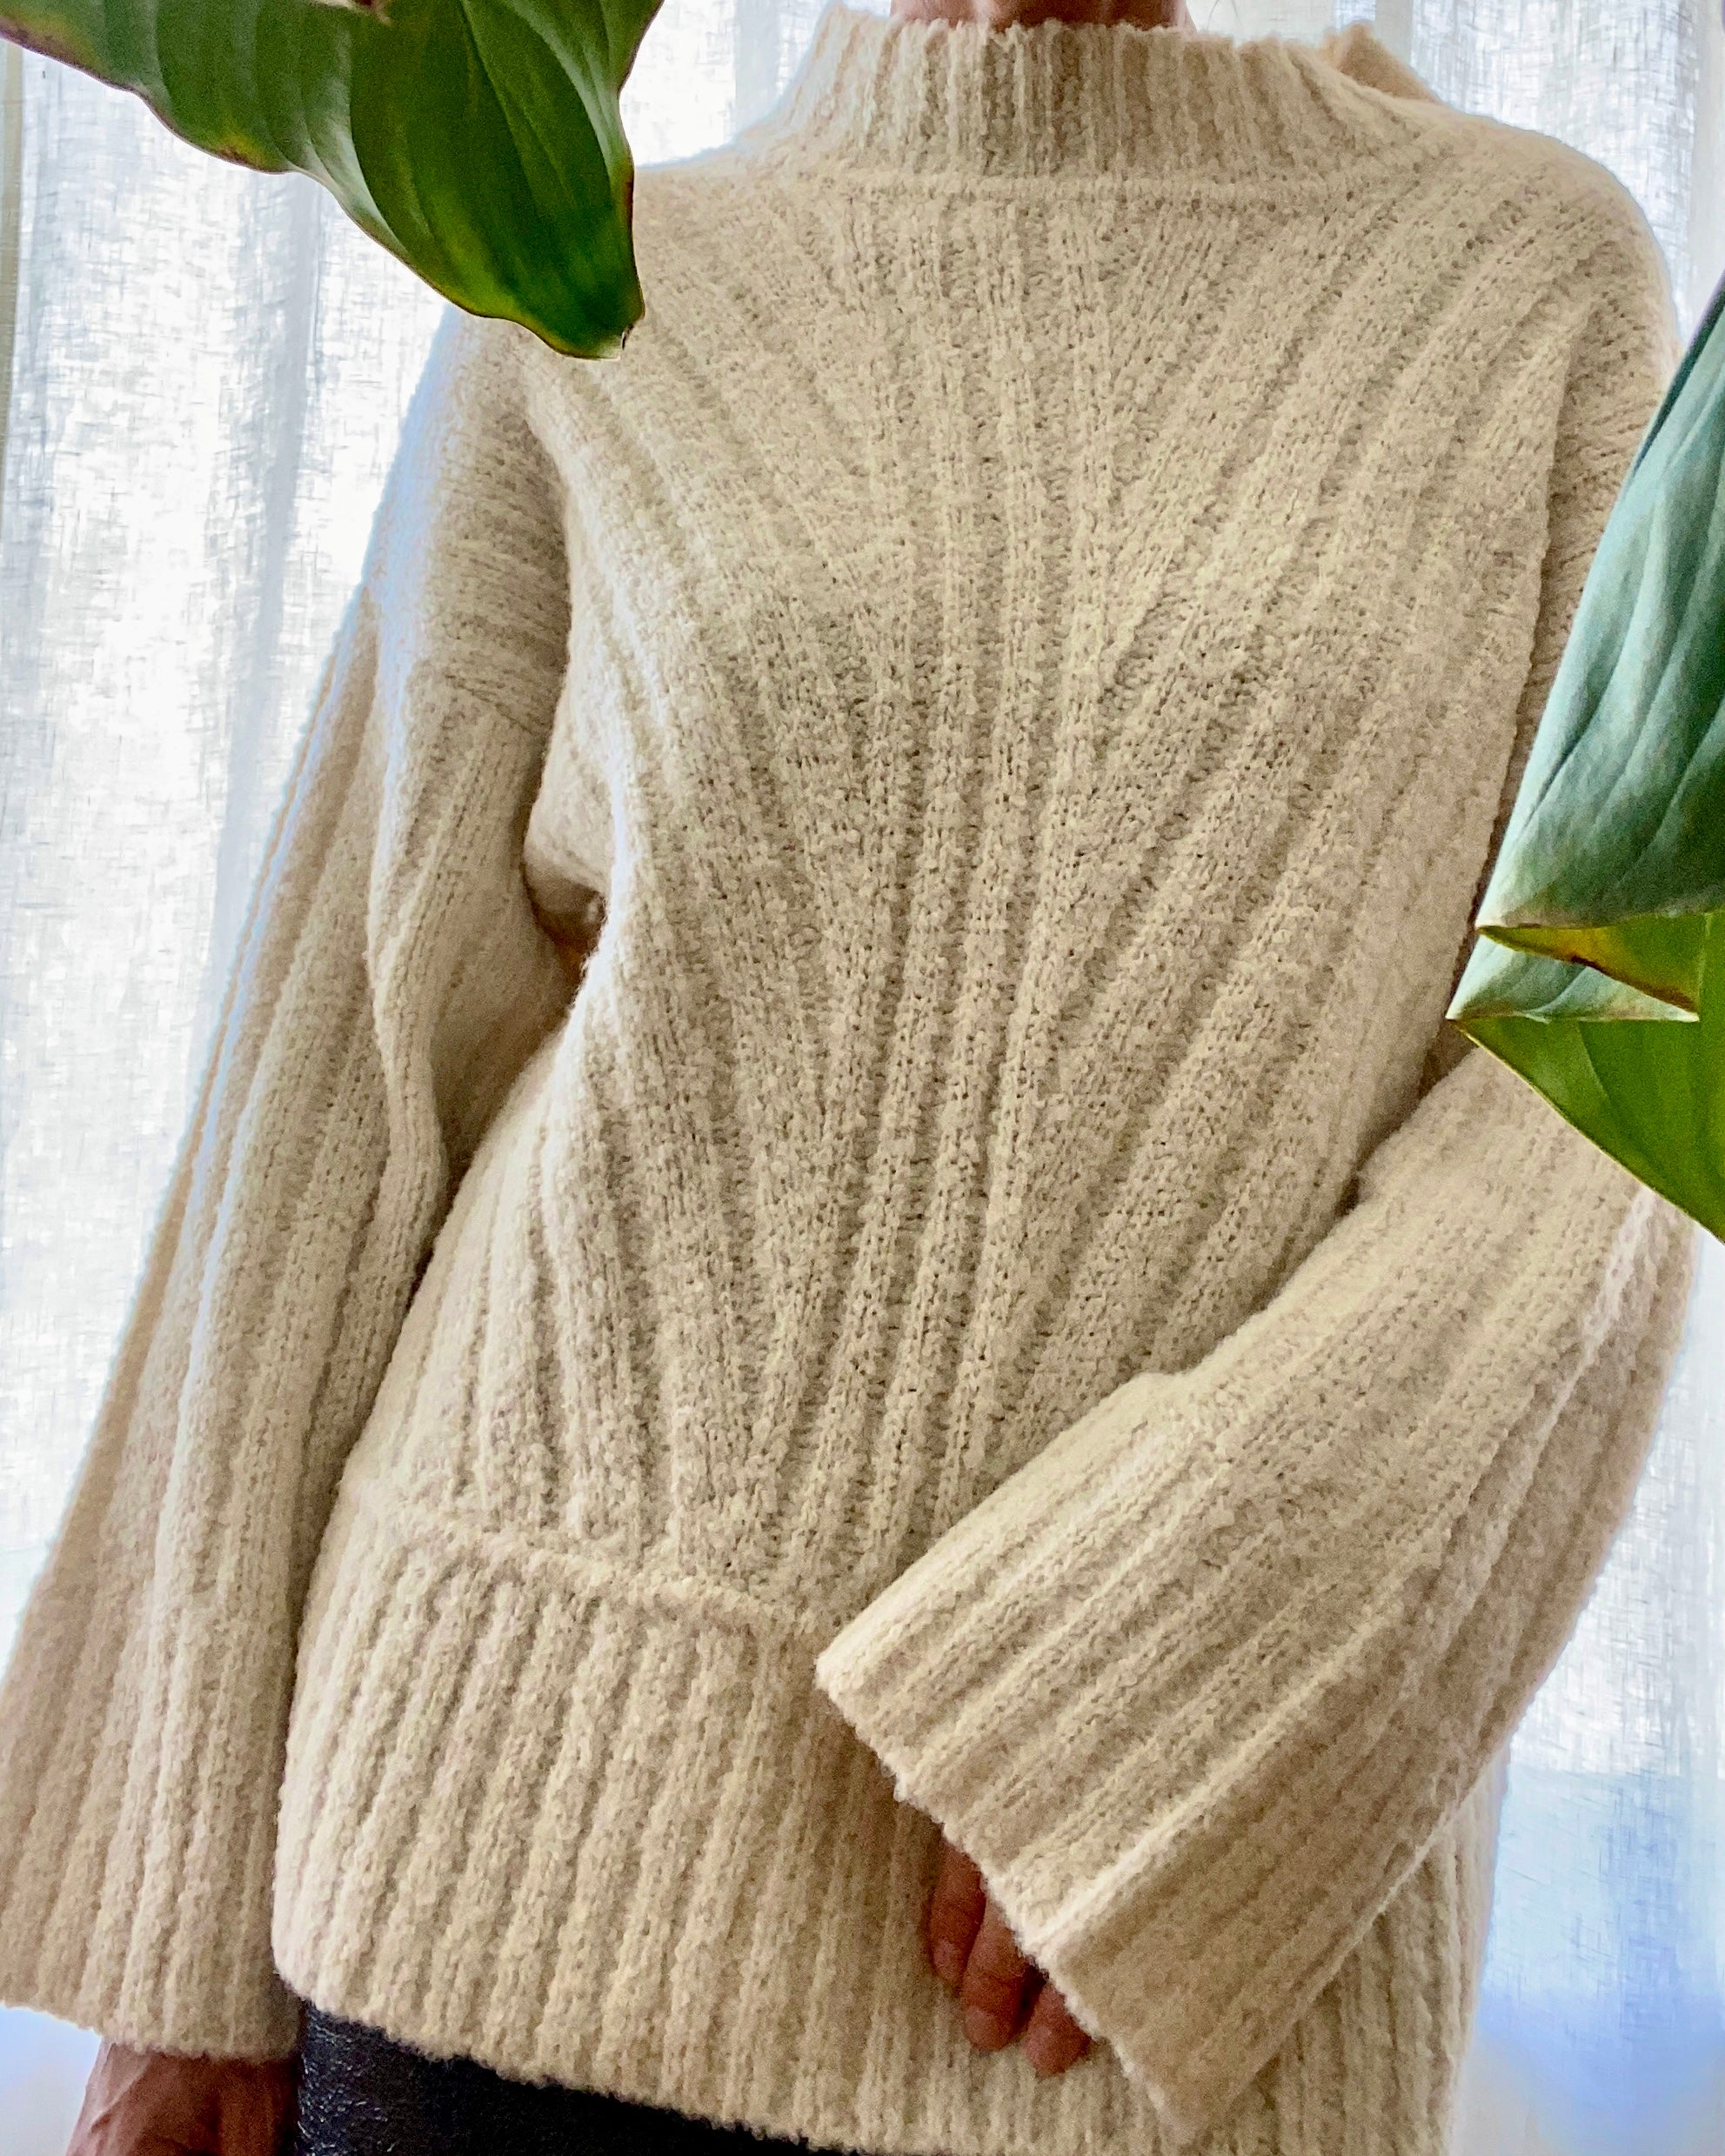 KORDAL Tate Sweater in Cream Rib